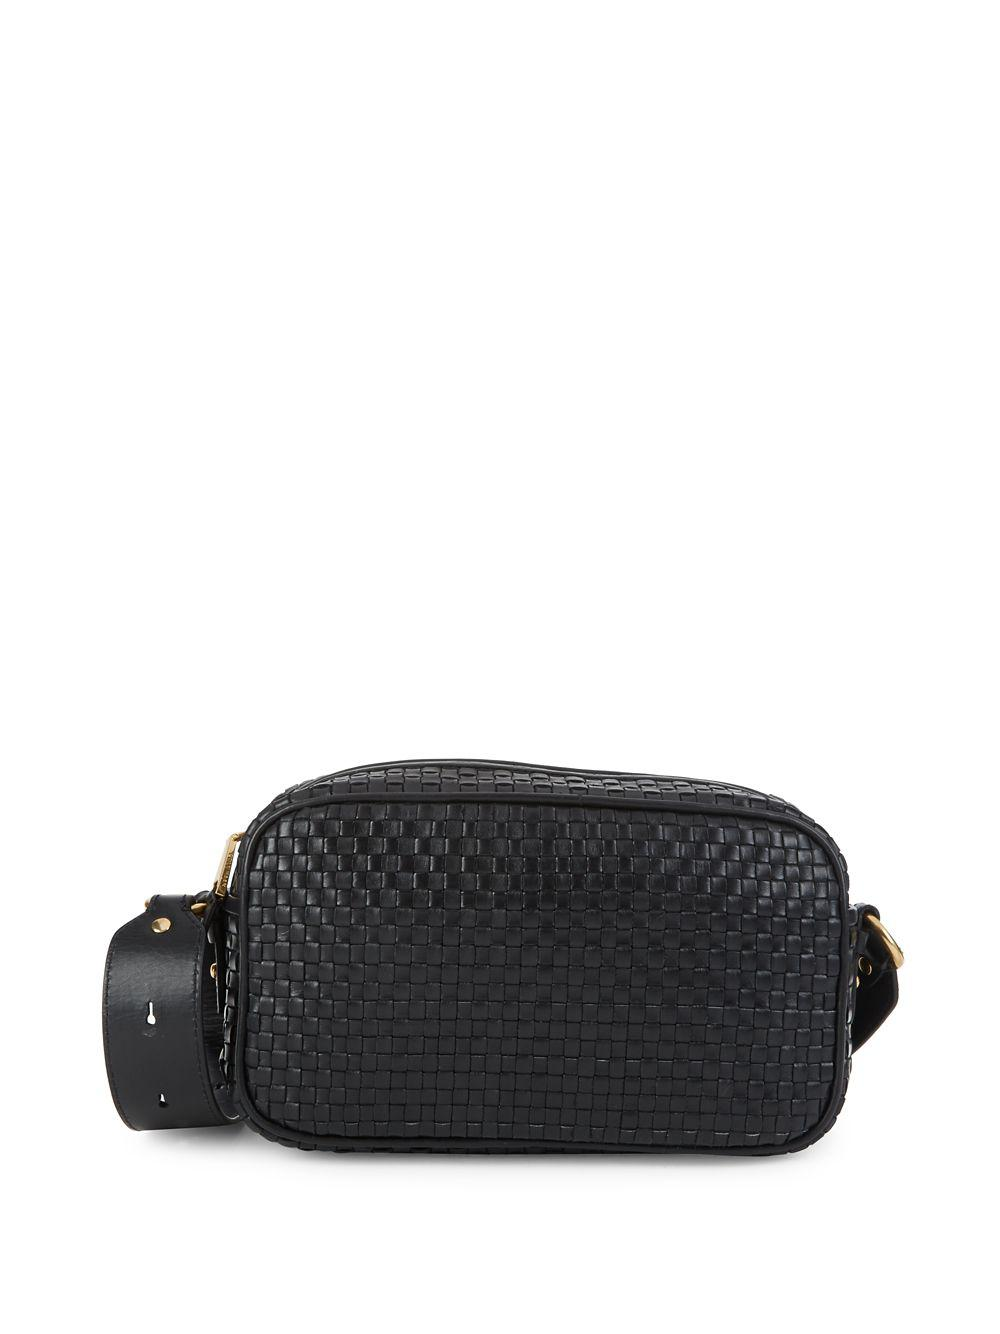 48a9defe8b Cole Haan Zoe Woven Leather Camera Bag in Black - Lyst